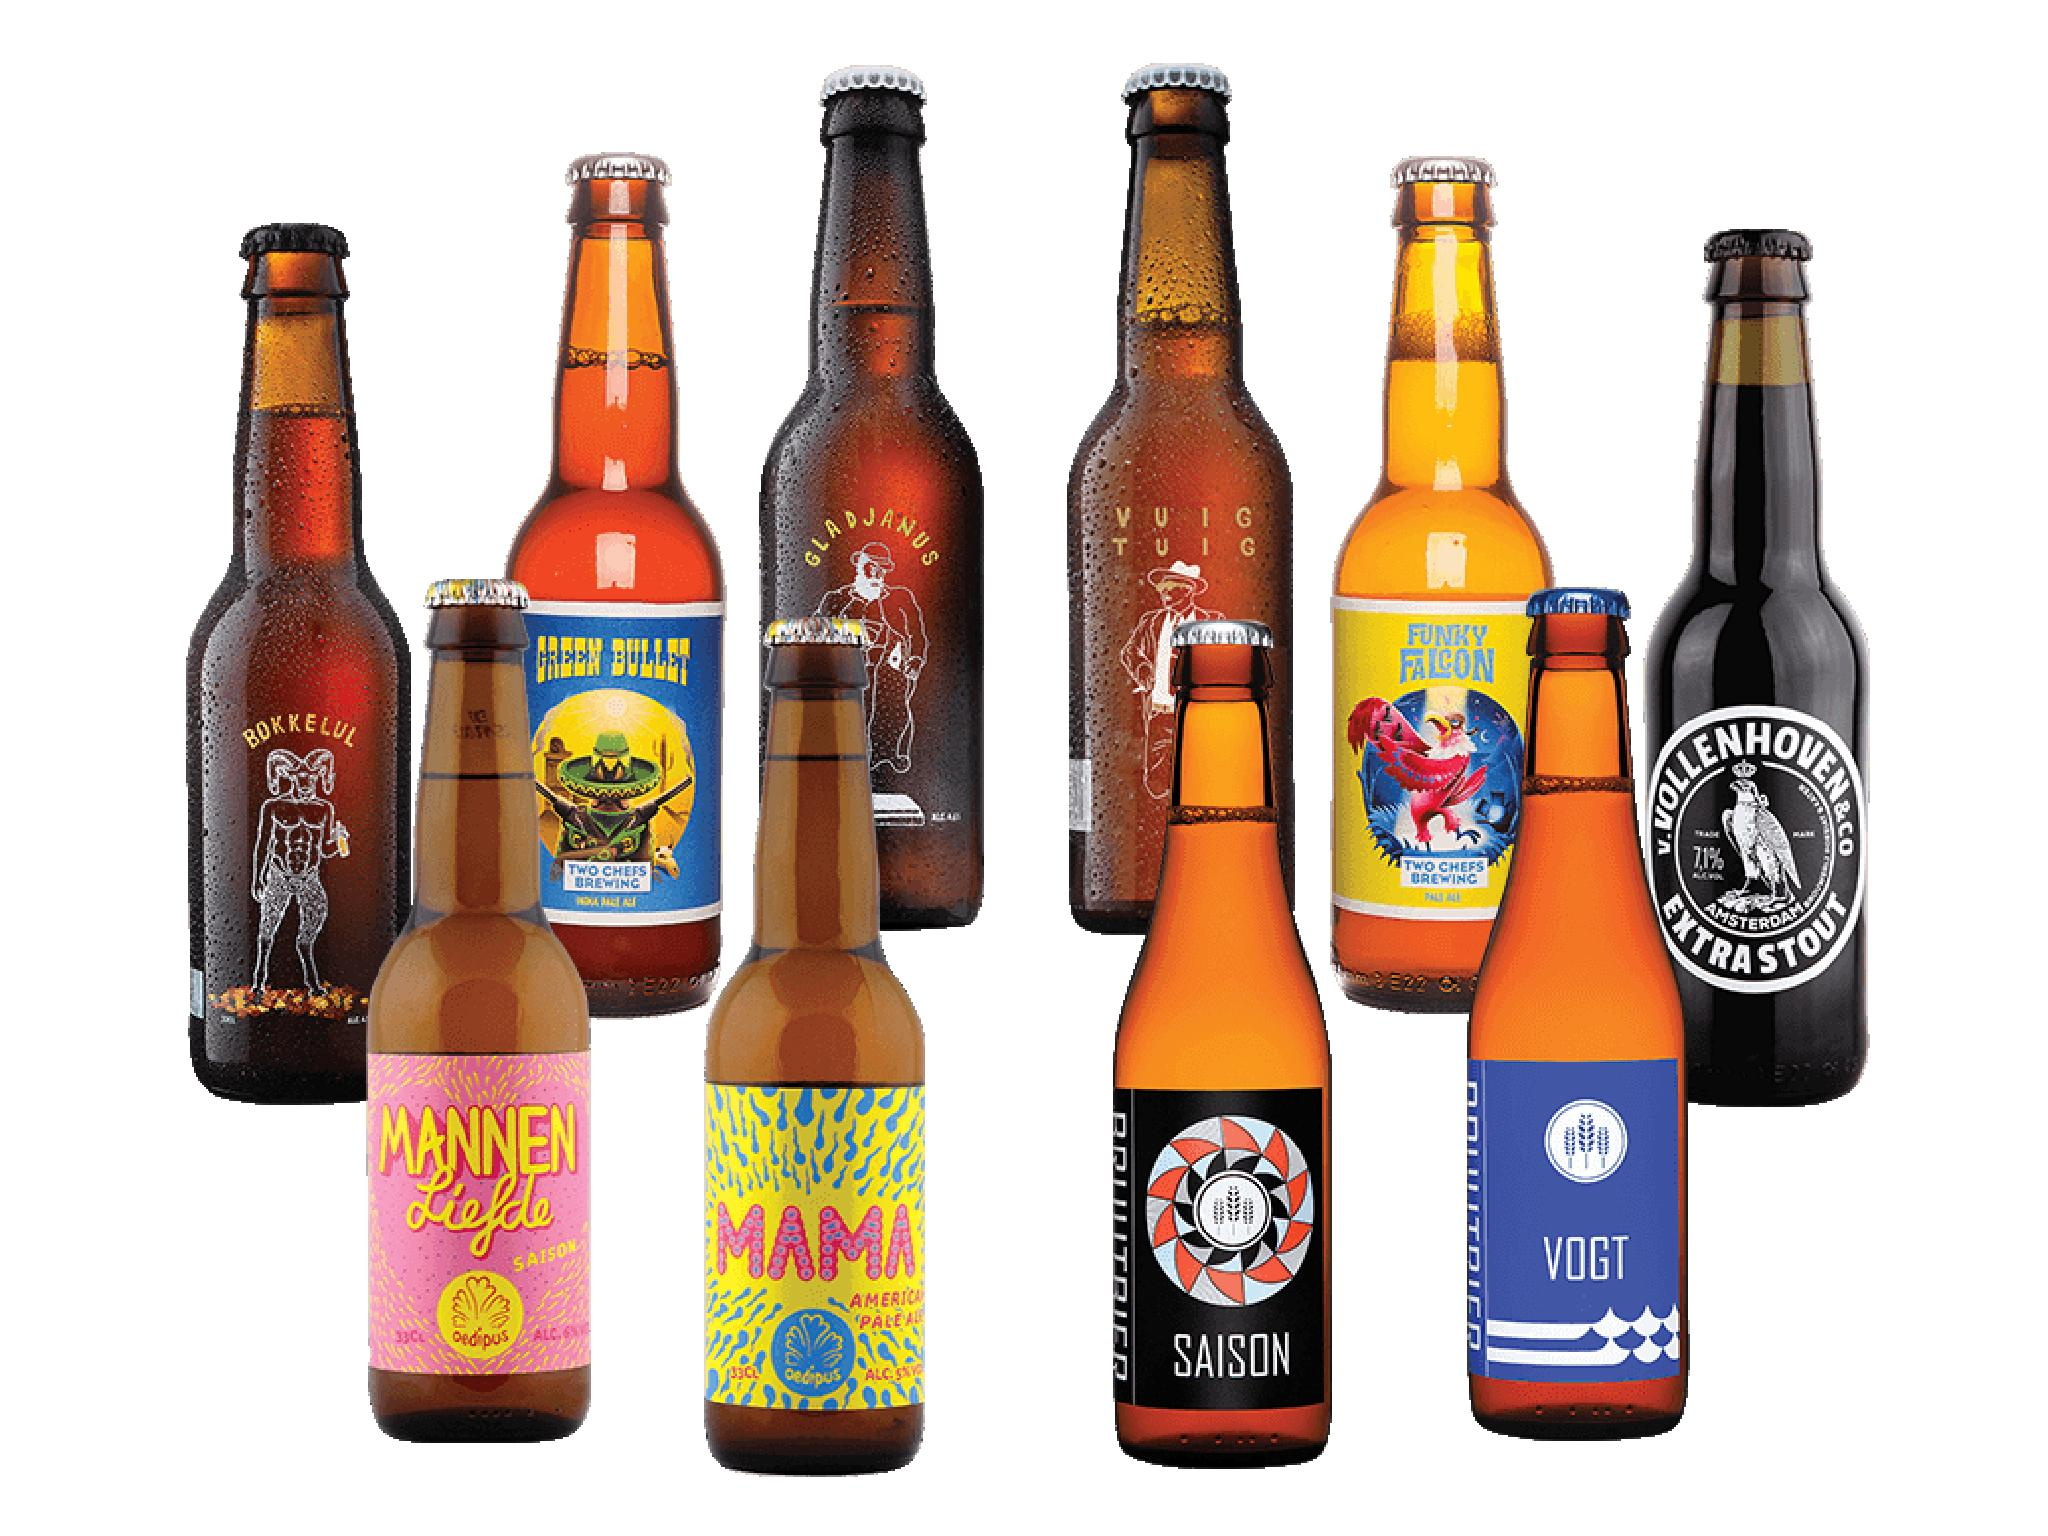 09fdfdb1f90 International Beer Day: Best beer and cider subscription boxes